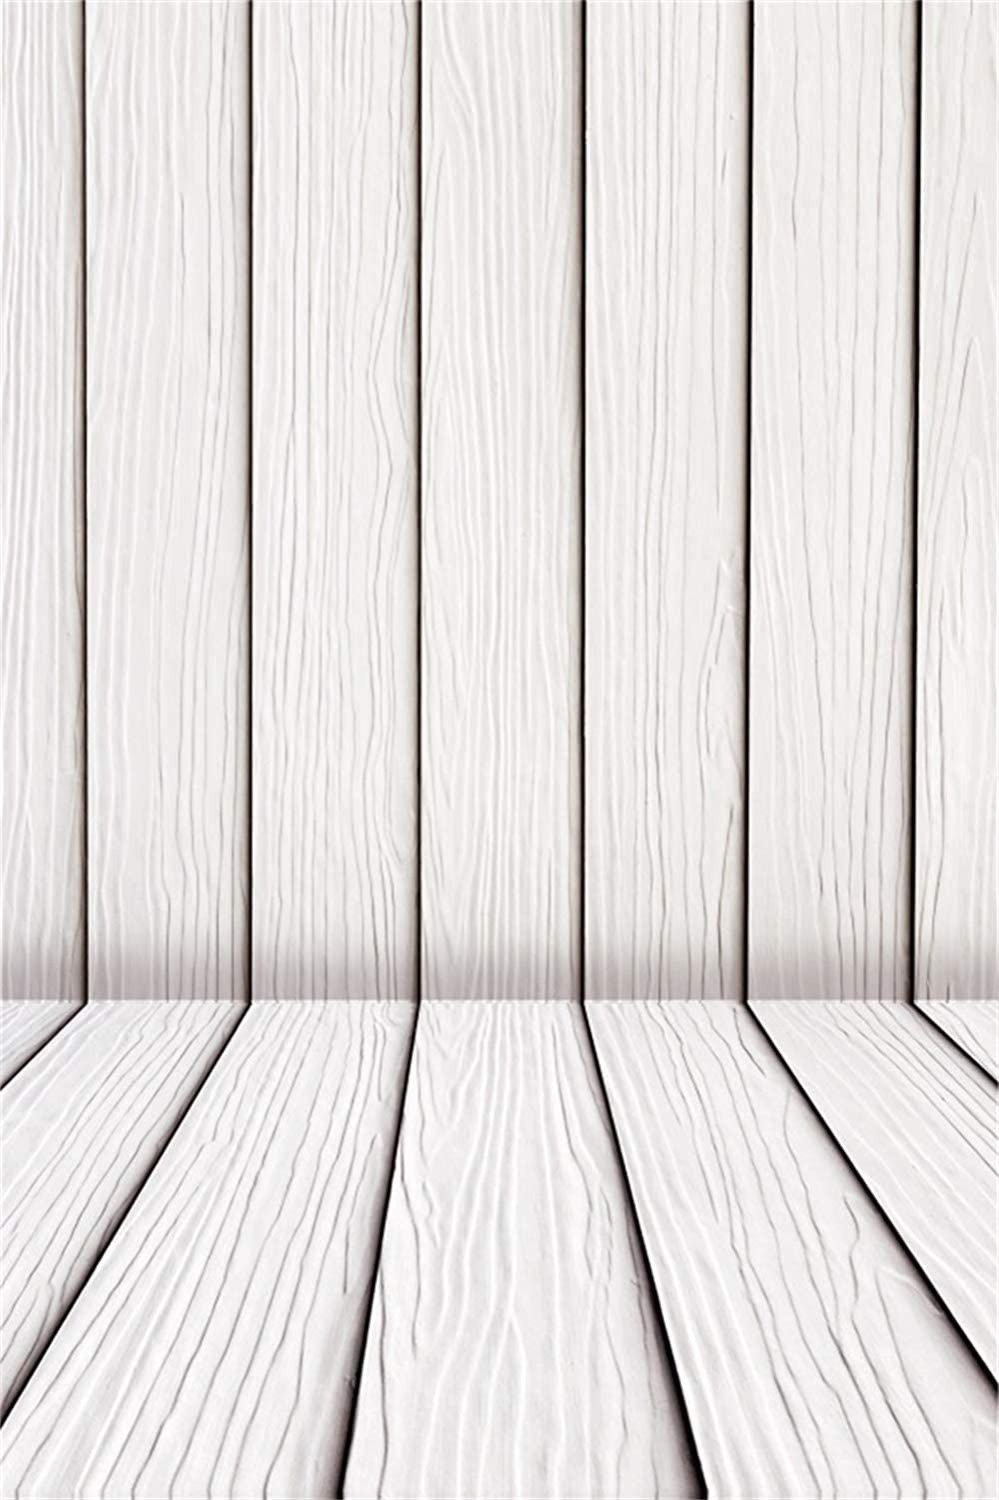 6x8ft Plain Modern Vertical Striped Wooden Wall Floor Background Polyester White Wooden Board Backdrop Child Adult Pets Artistic Portrait Shoot Studio Props